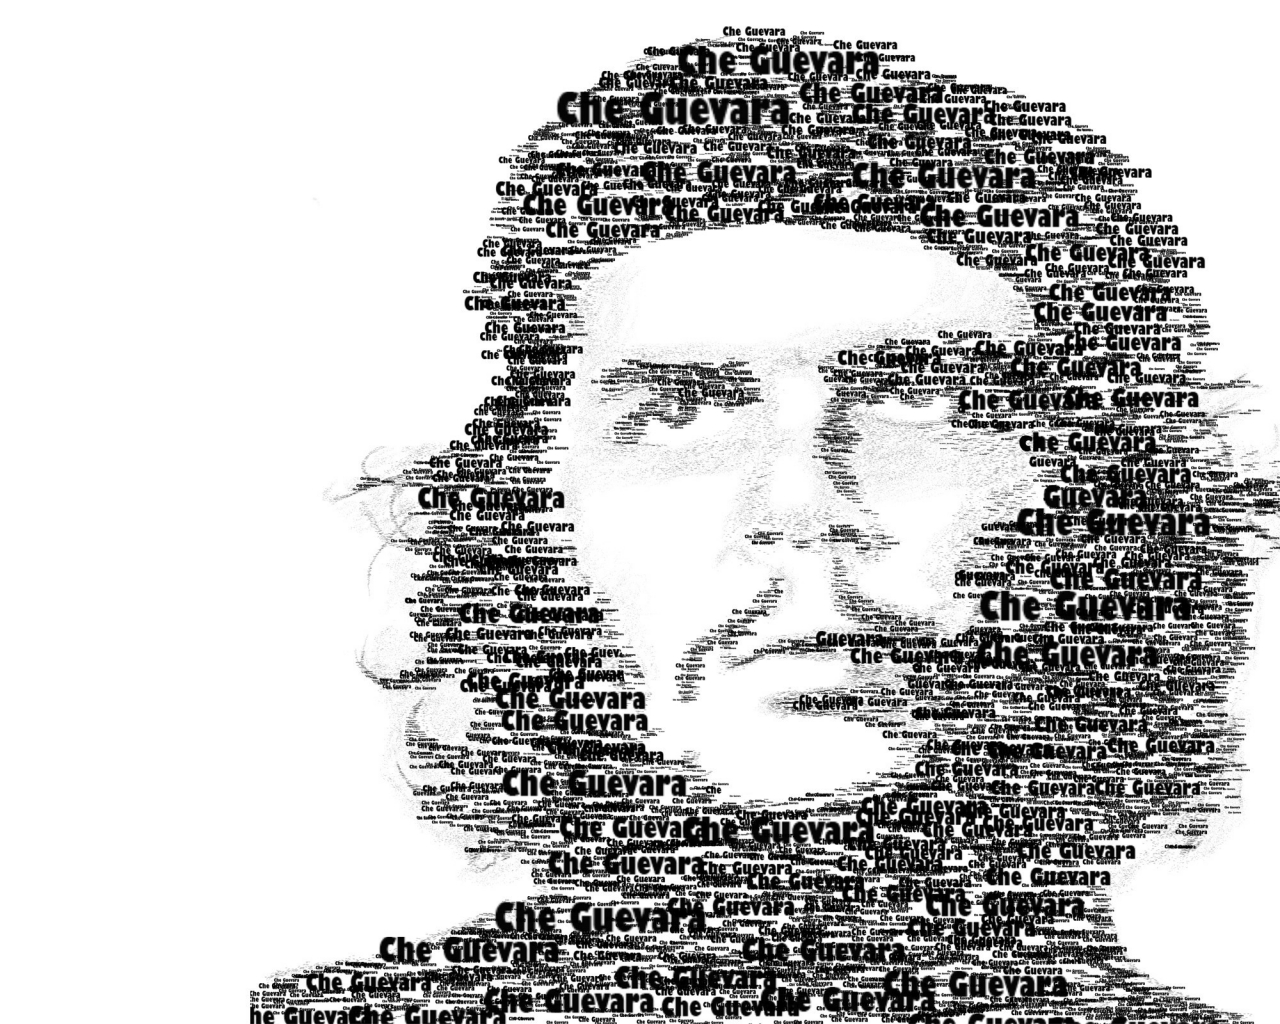 account of the life and contributions of che guevara What was che guevara's contribution to the world and how did he help  che-che's only contributions to the world was hatred  as his life affected us .